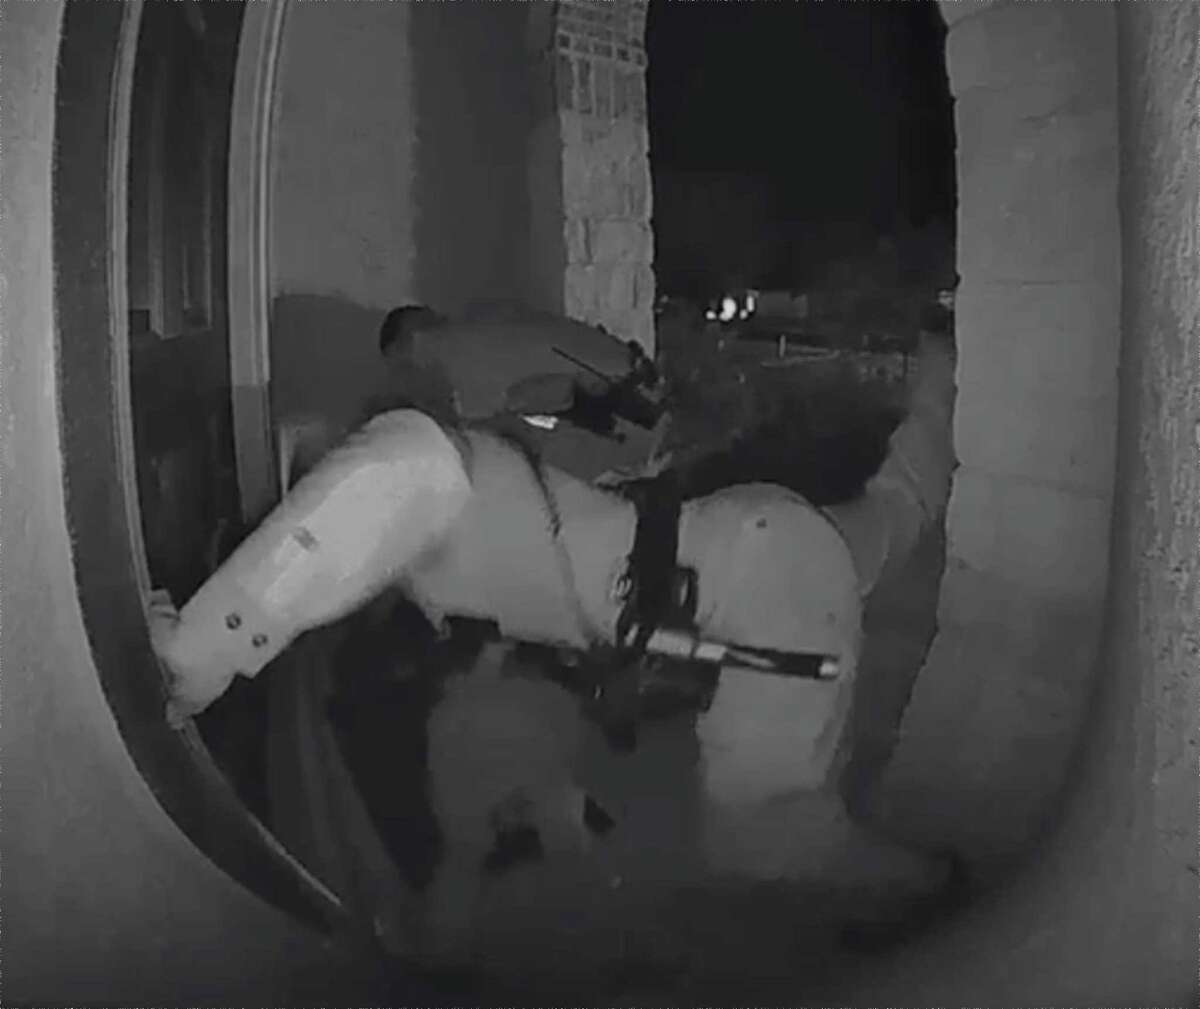 A screen grab from a home surveillance video shows a female Schertz police officer with her leg extended, preparing to kick Zekee Rayford, 18, with her knee on the front steps of his home while the parents watch from inside the front door.